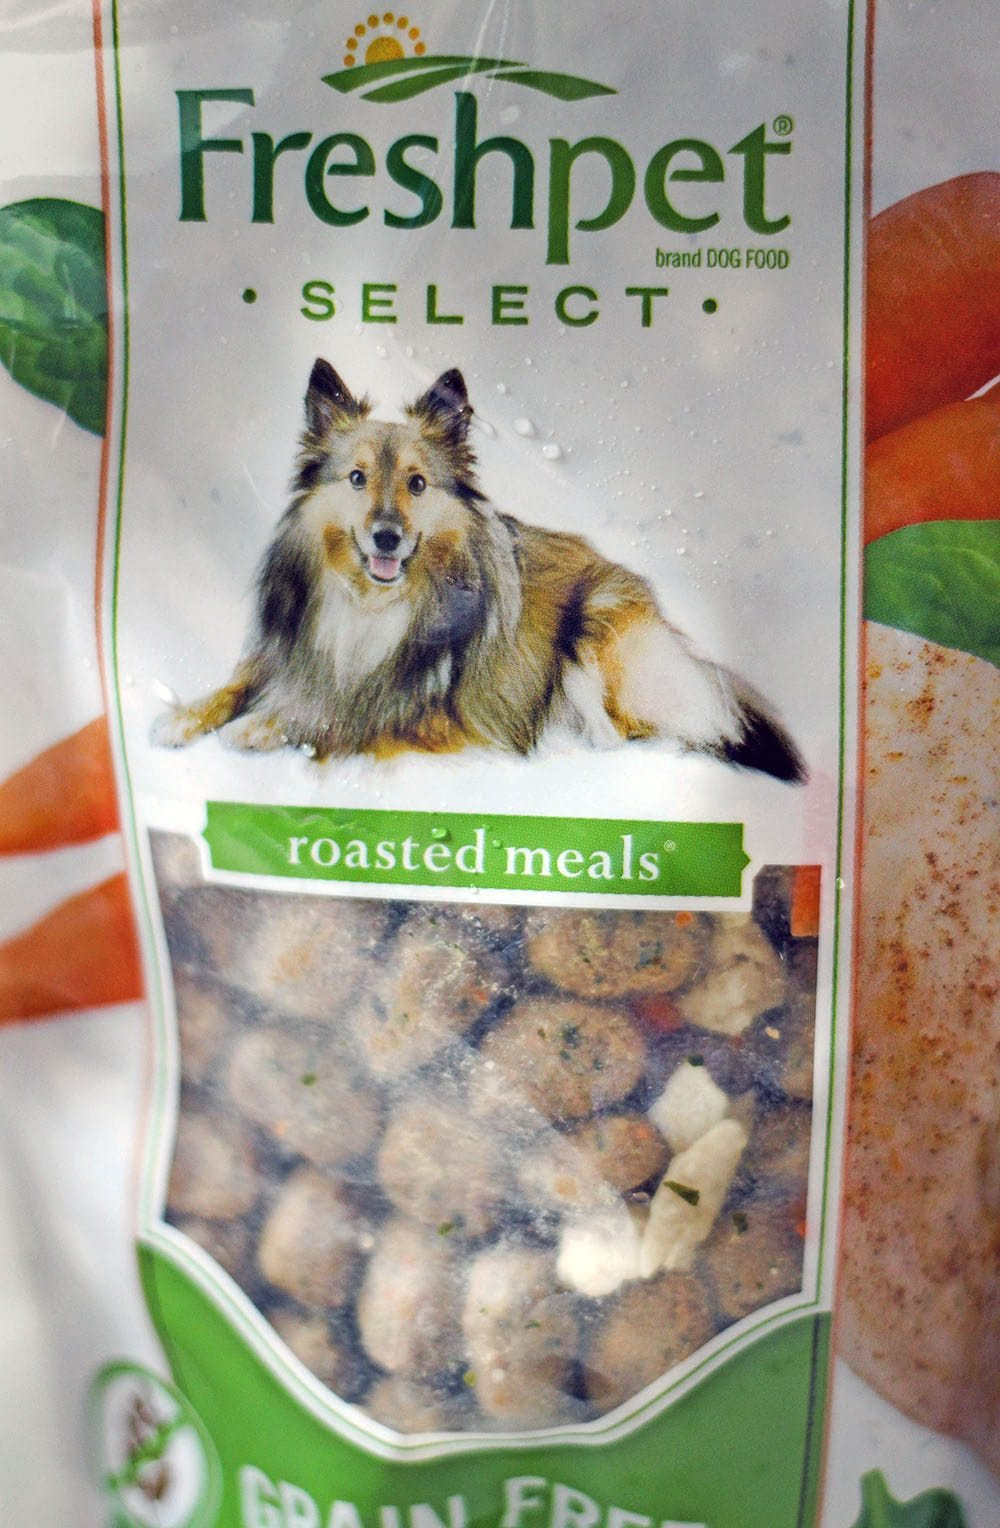 Freshpet roasted meals